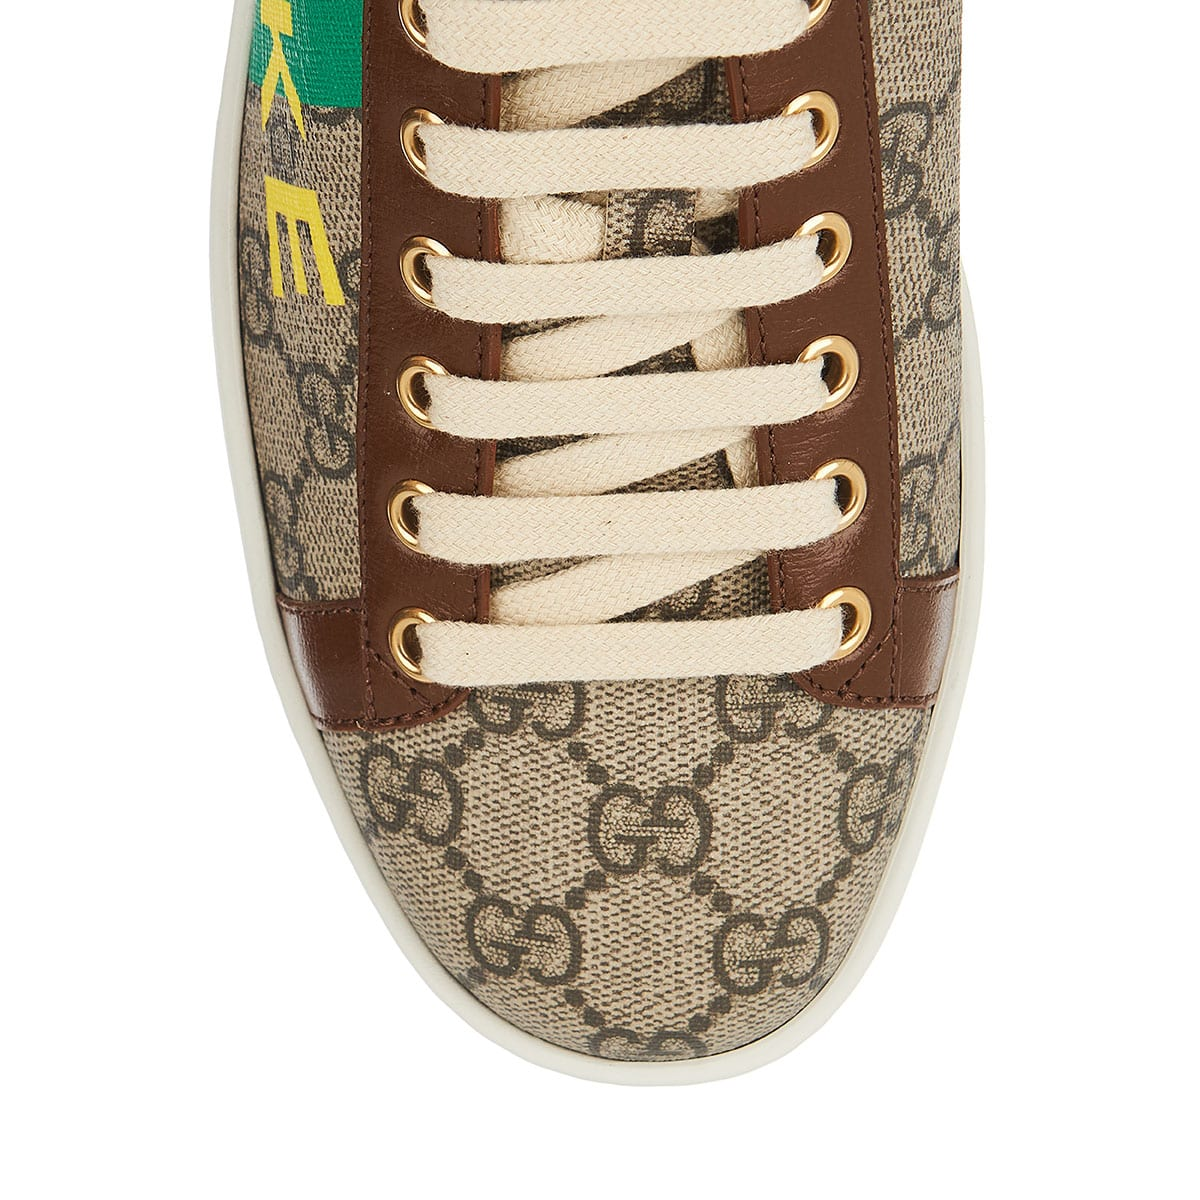 Fake Not GG Ace sneakers